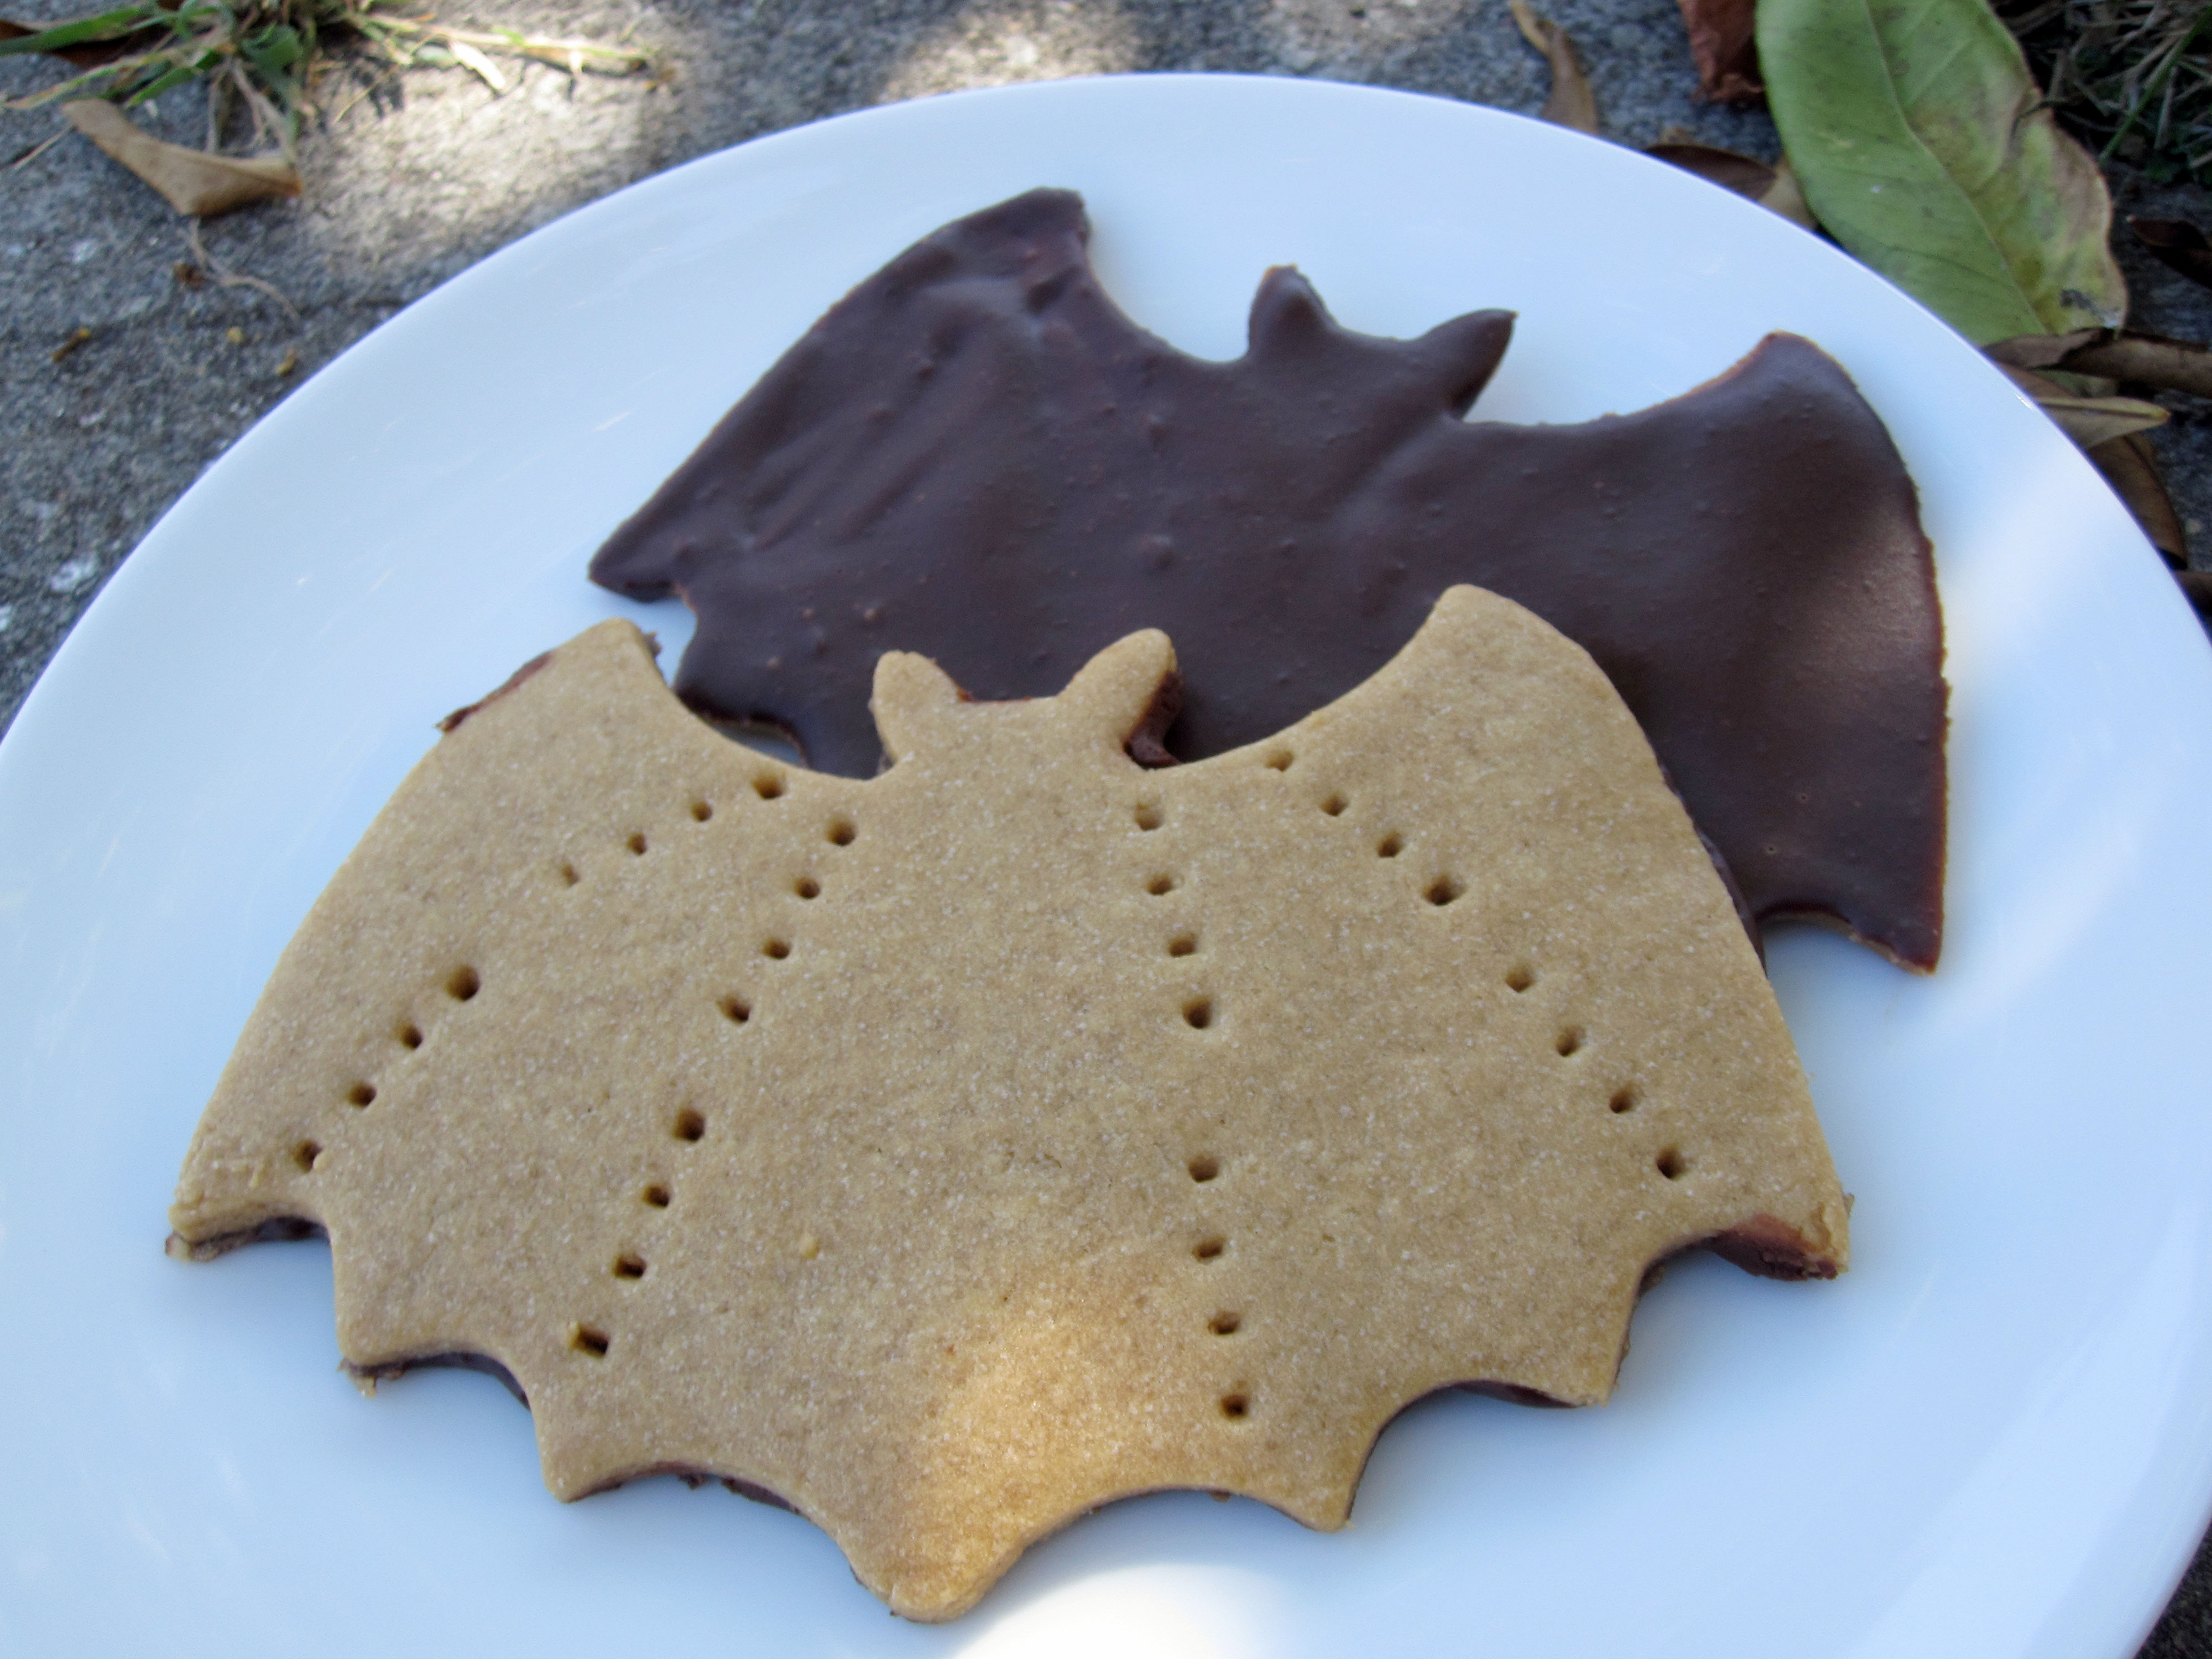 Vegan MoFo Recipe #4: Shortbread